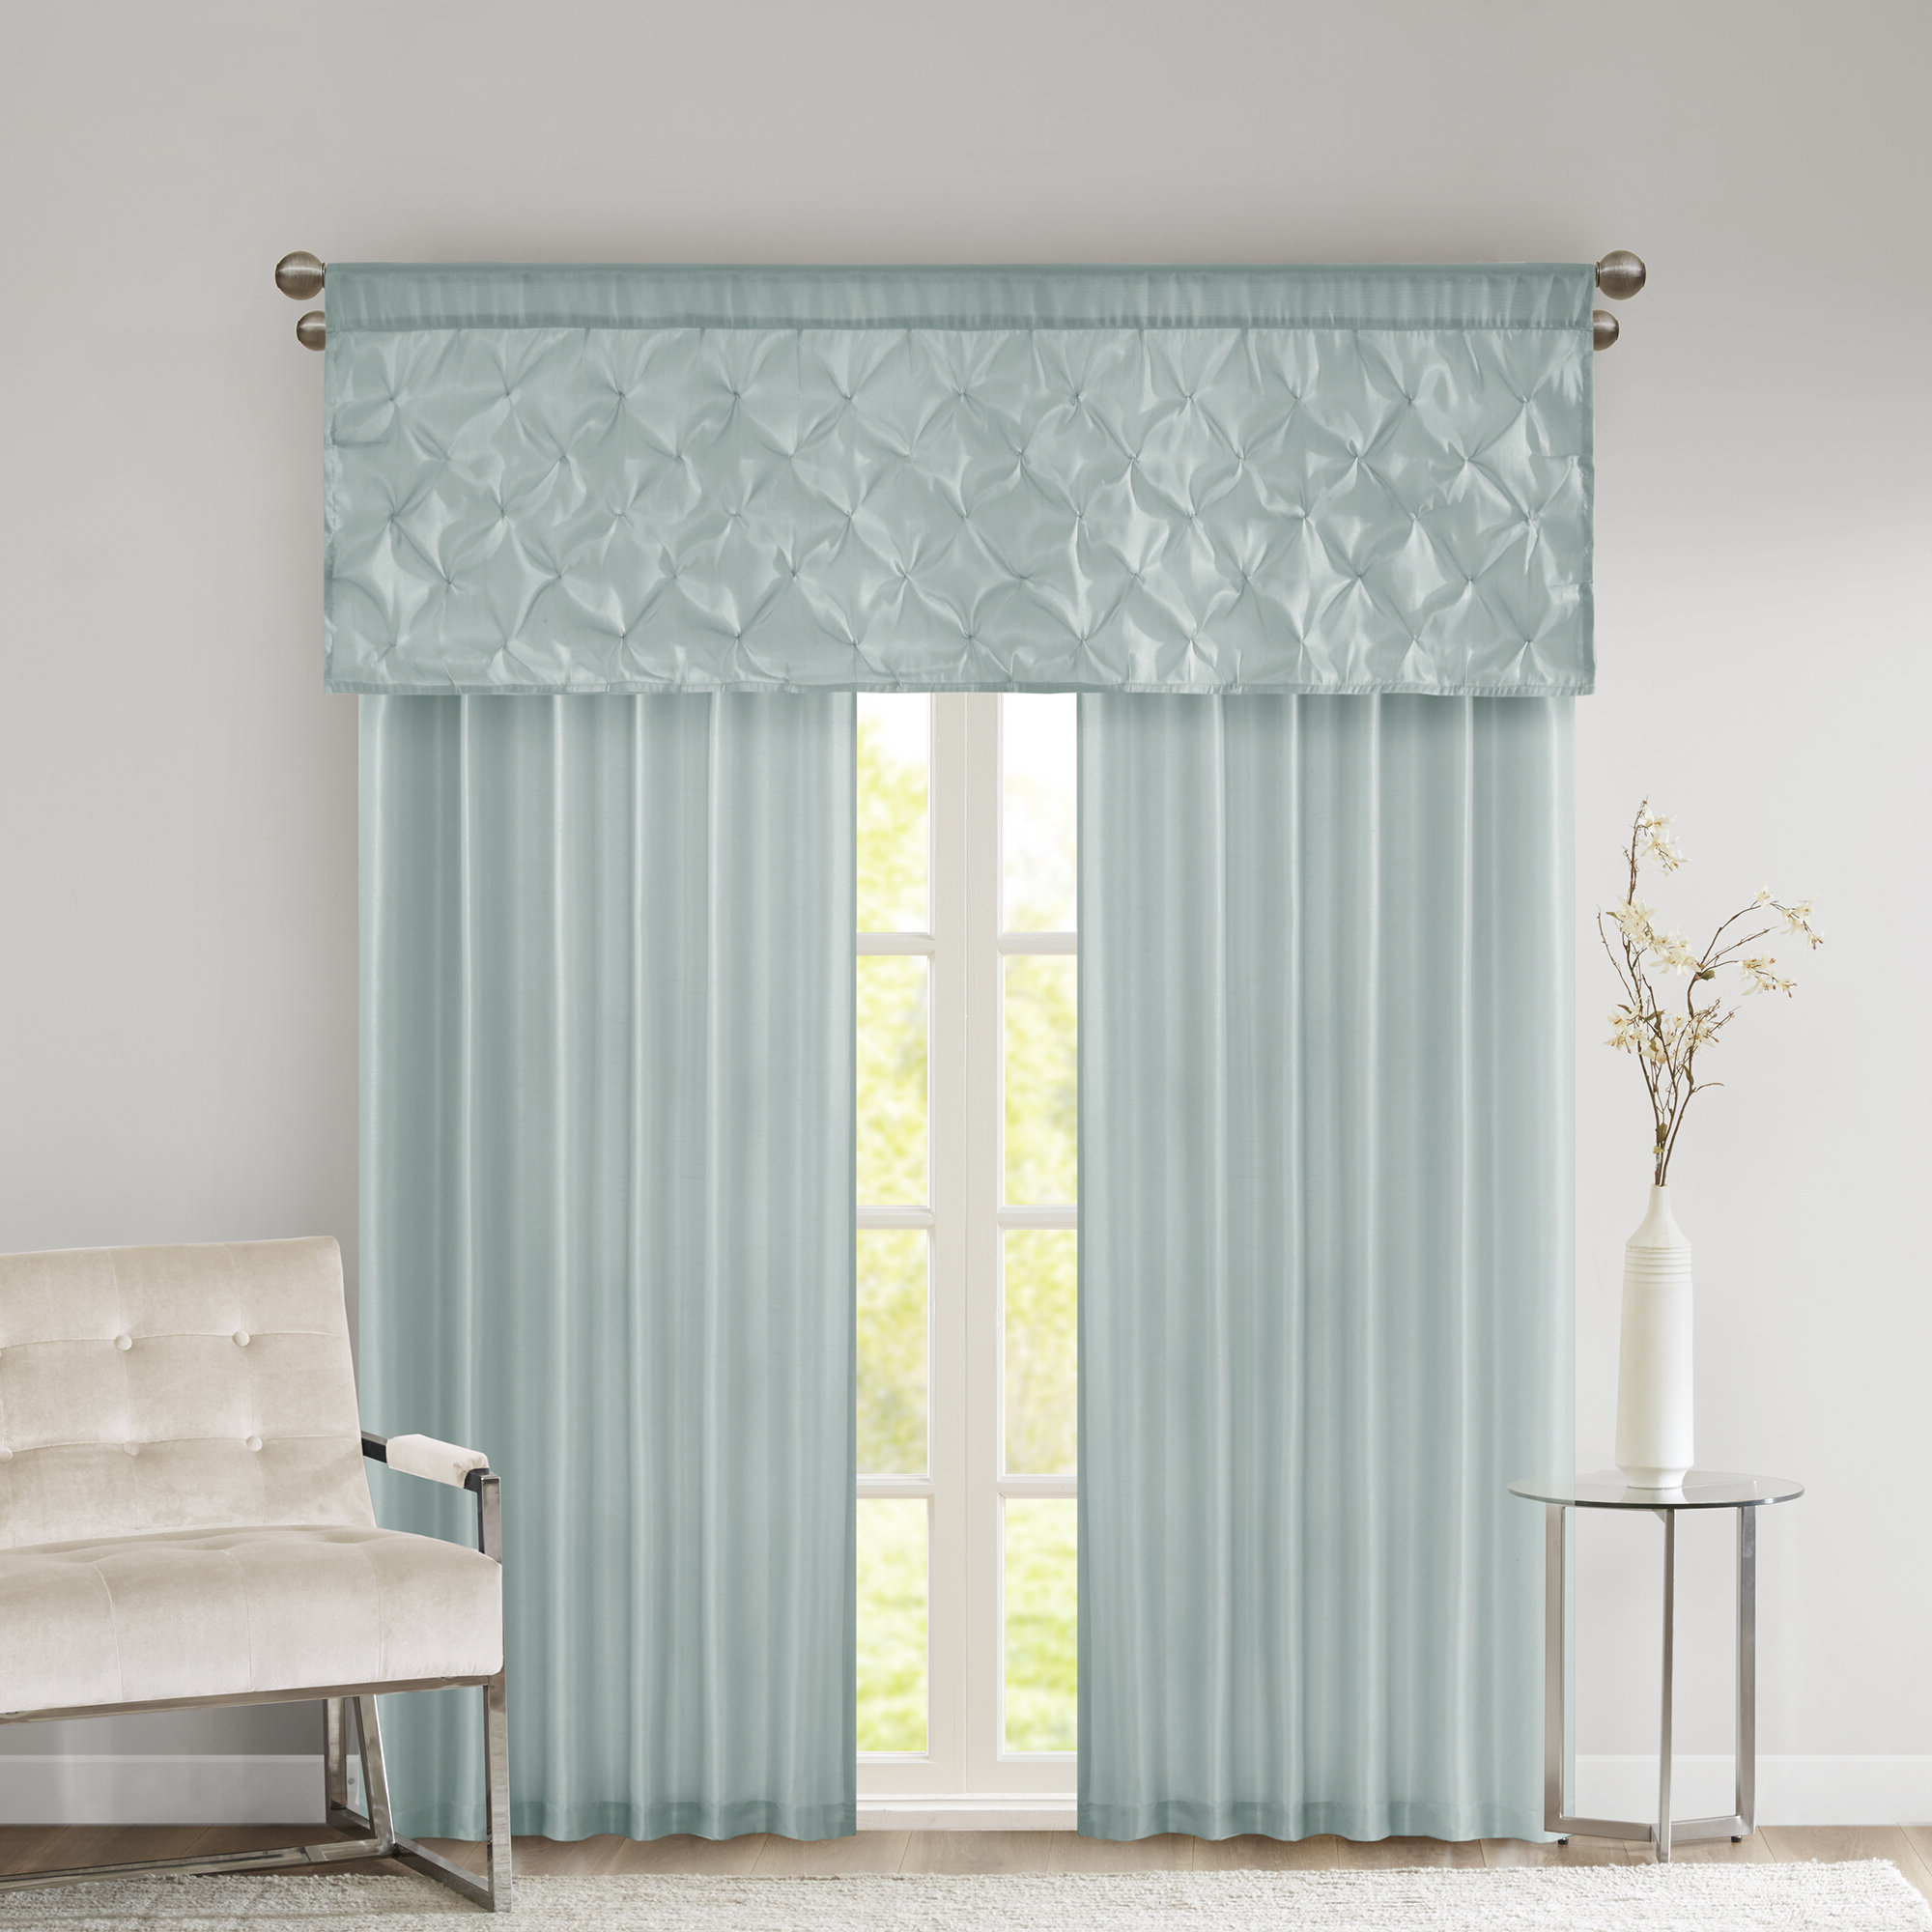 Widely Used Petrucci Solid Room Darkening Rod Pocket Curtain Panels Throughout Luxury Collection Venetian Sheer Curtain Panel Pairs (View 20 of 20)